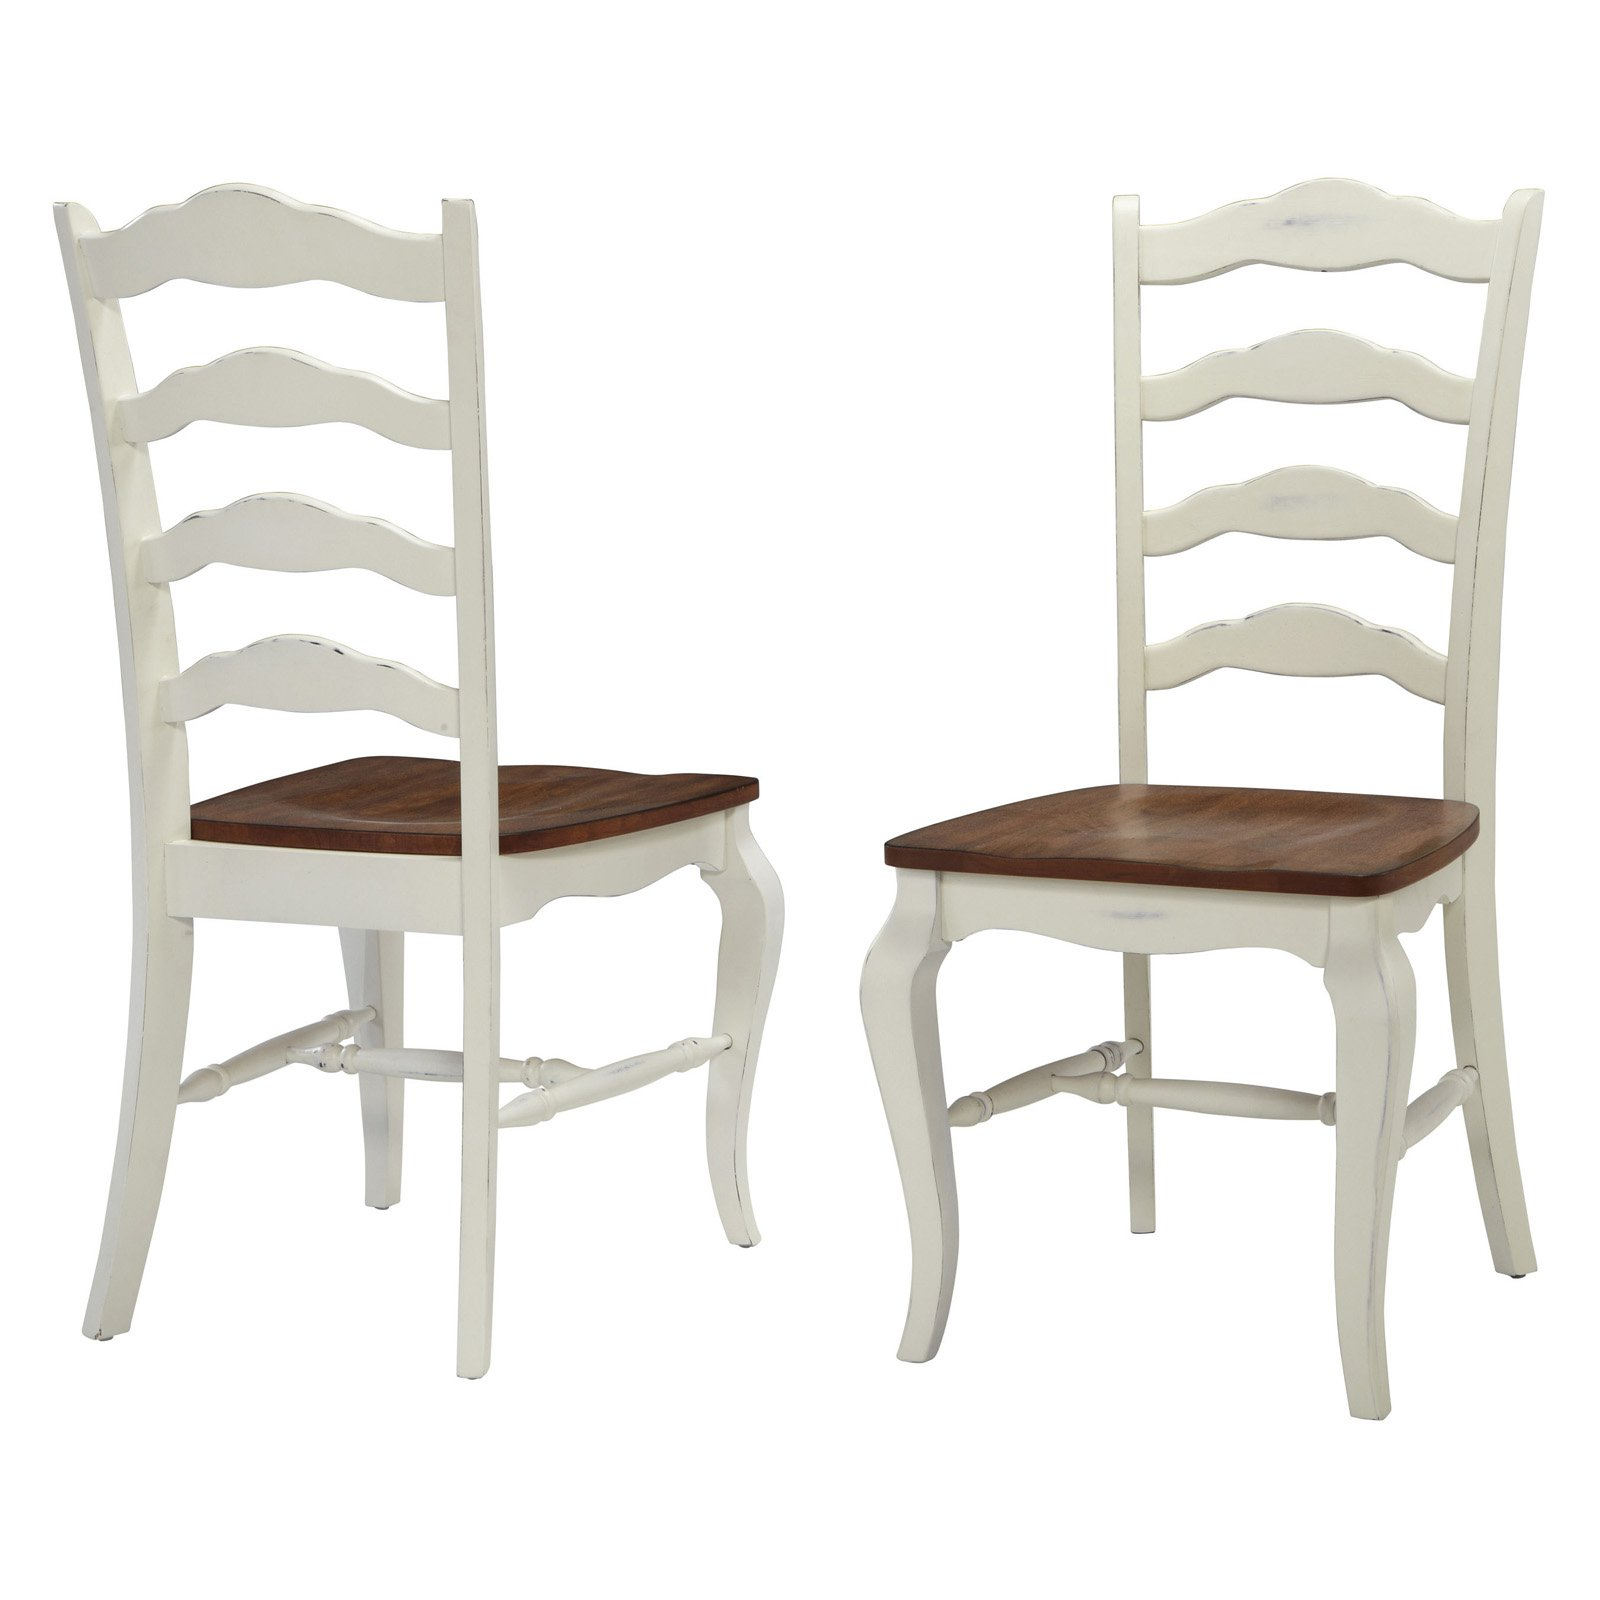 Home Styles French Countryside 2 Piece Oak Dining Chair Set, Off White